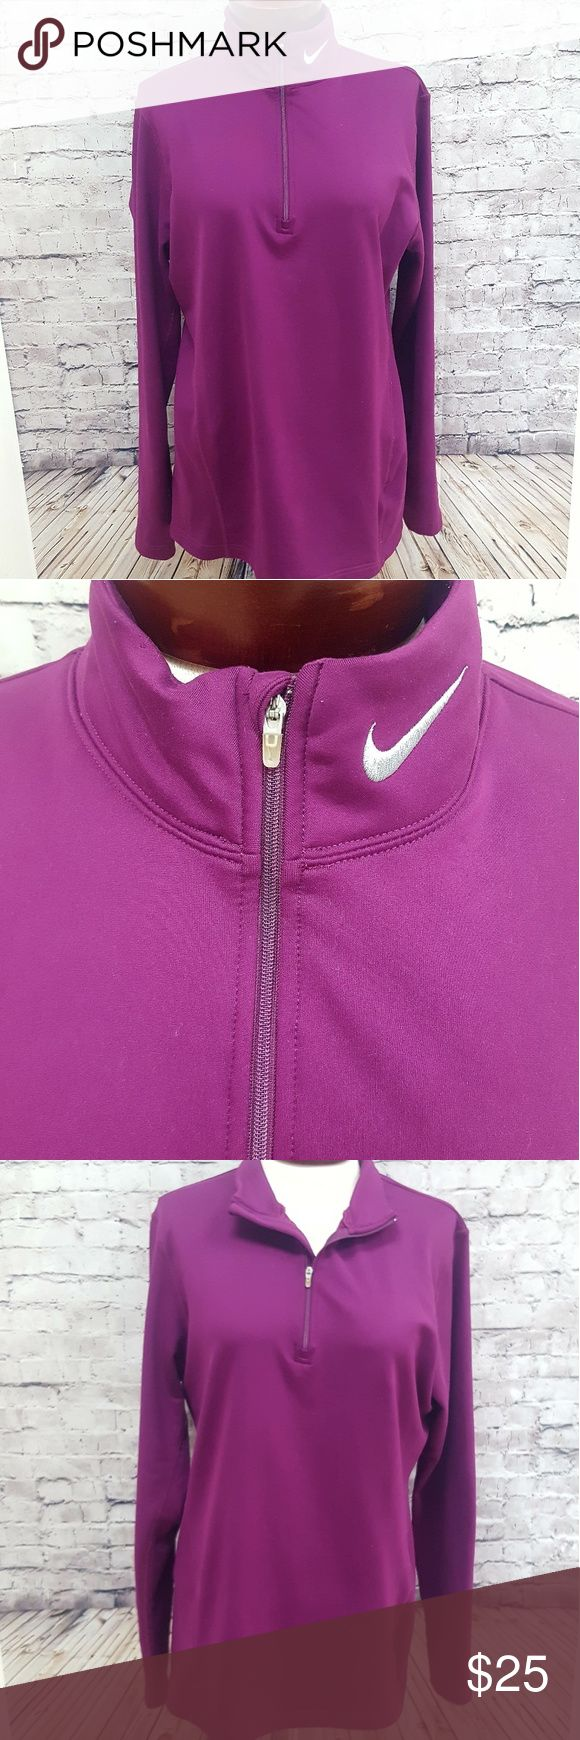 NIKE FIT DRY PURPLE FULL ZIP JACKET XL Womens Nike Fit Dri Purple Long Sleeve Activewear Jacket. Good pre-owned condition (no rips, stains, or holes).   Size XL (16-18) Material: Polyester/ Spandex FAST SHIPPING!! Nike Tops Sweatshirts & Hoodies